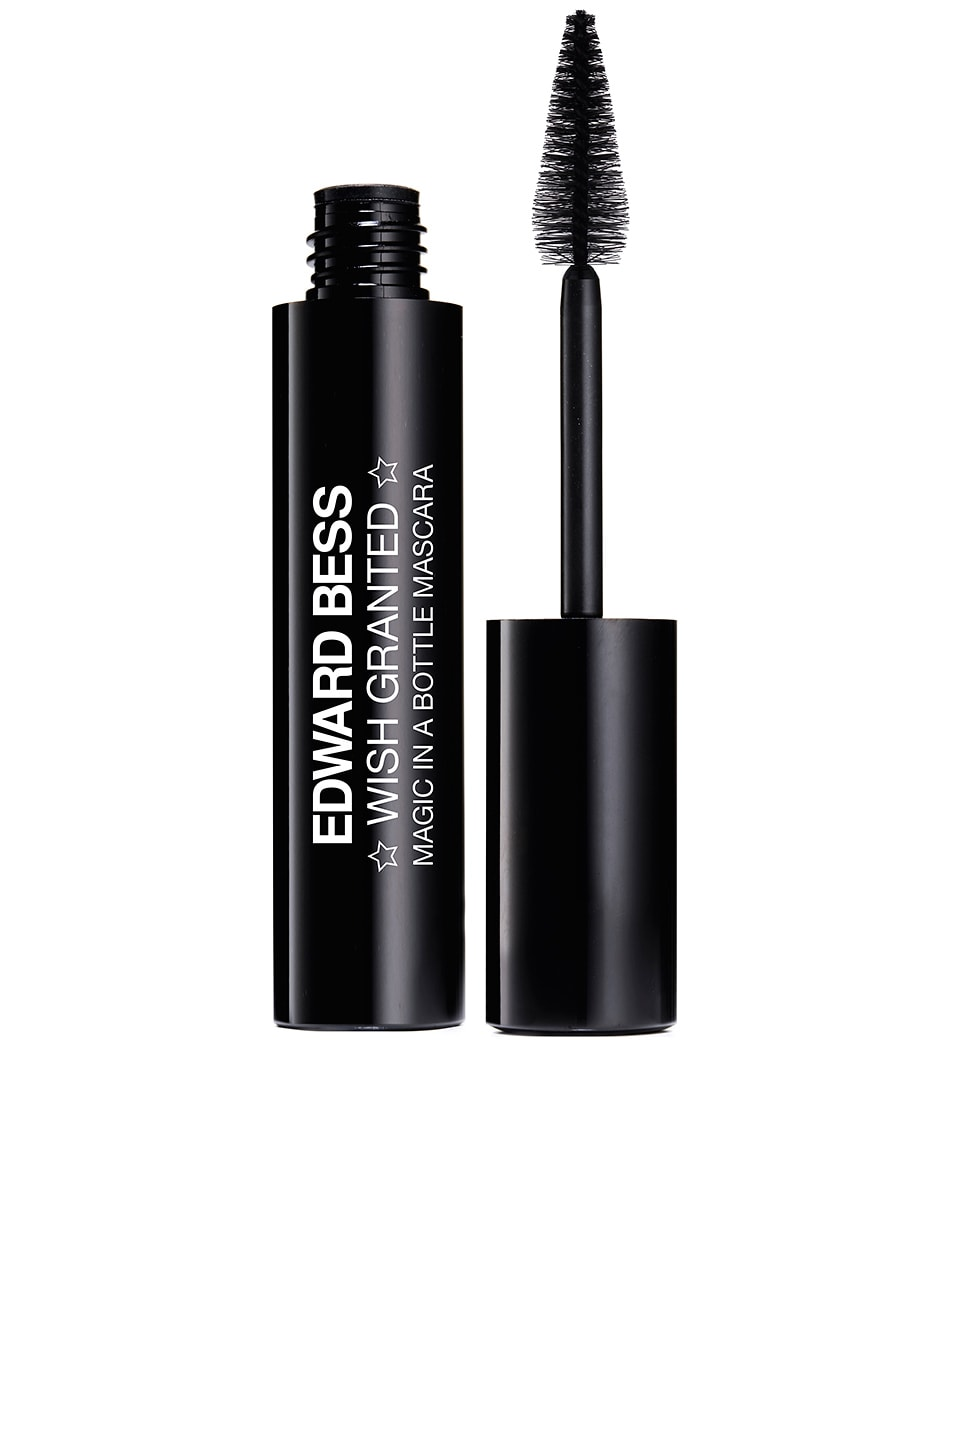 Edward Bess Wish Granted Magic in a Bottle Mascara in Onyx